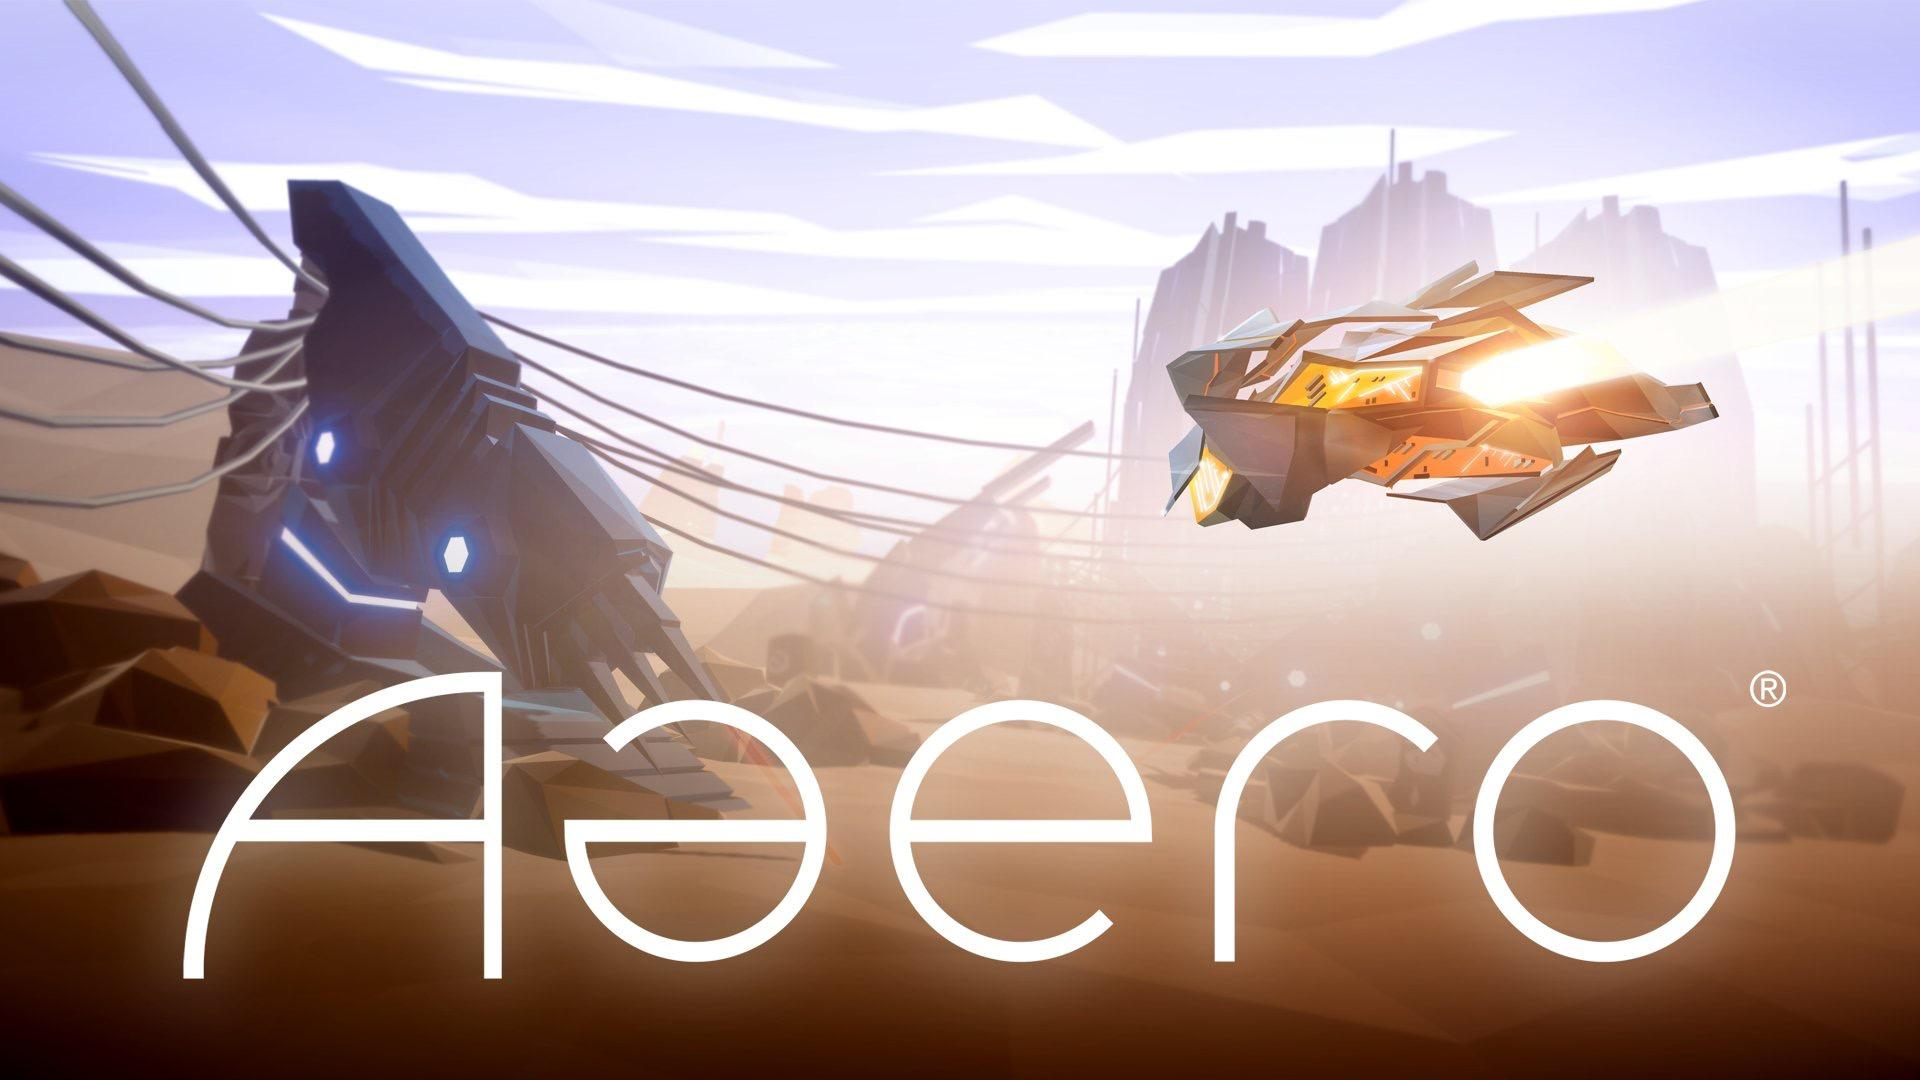 Aaero is a High-Speed, Music-Fueled Adventure Coming to